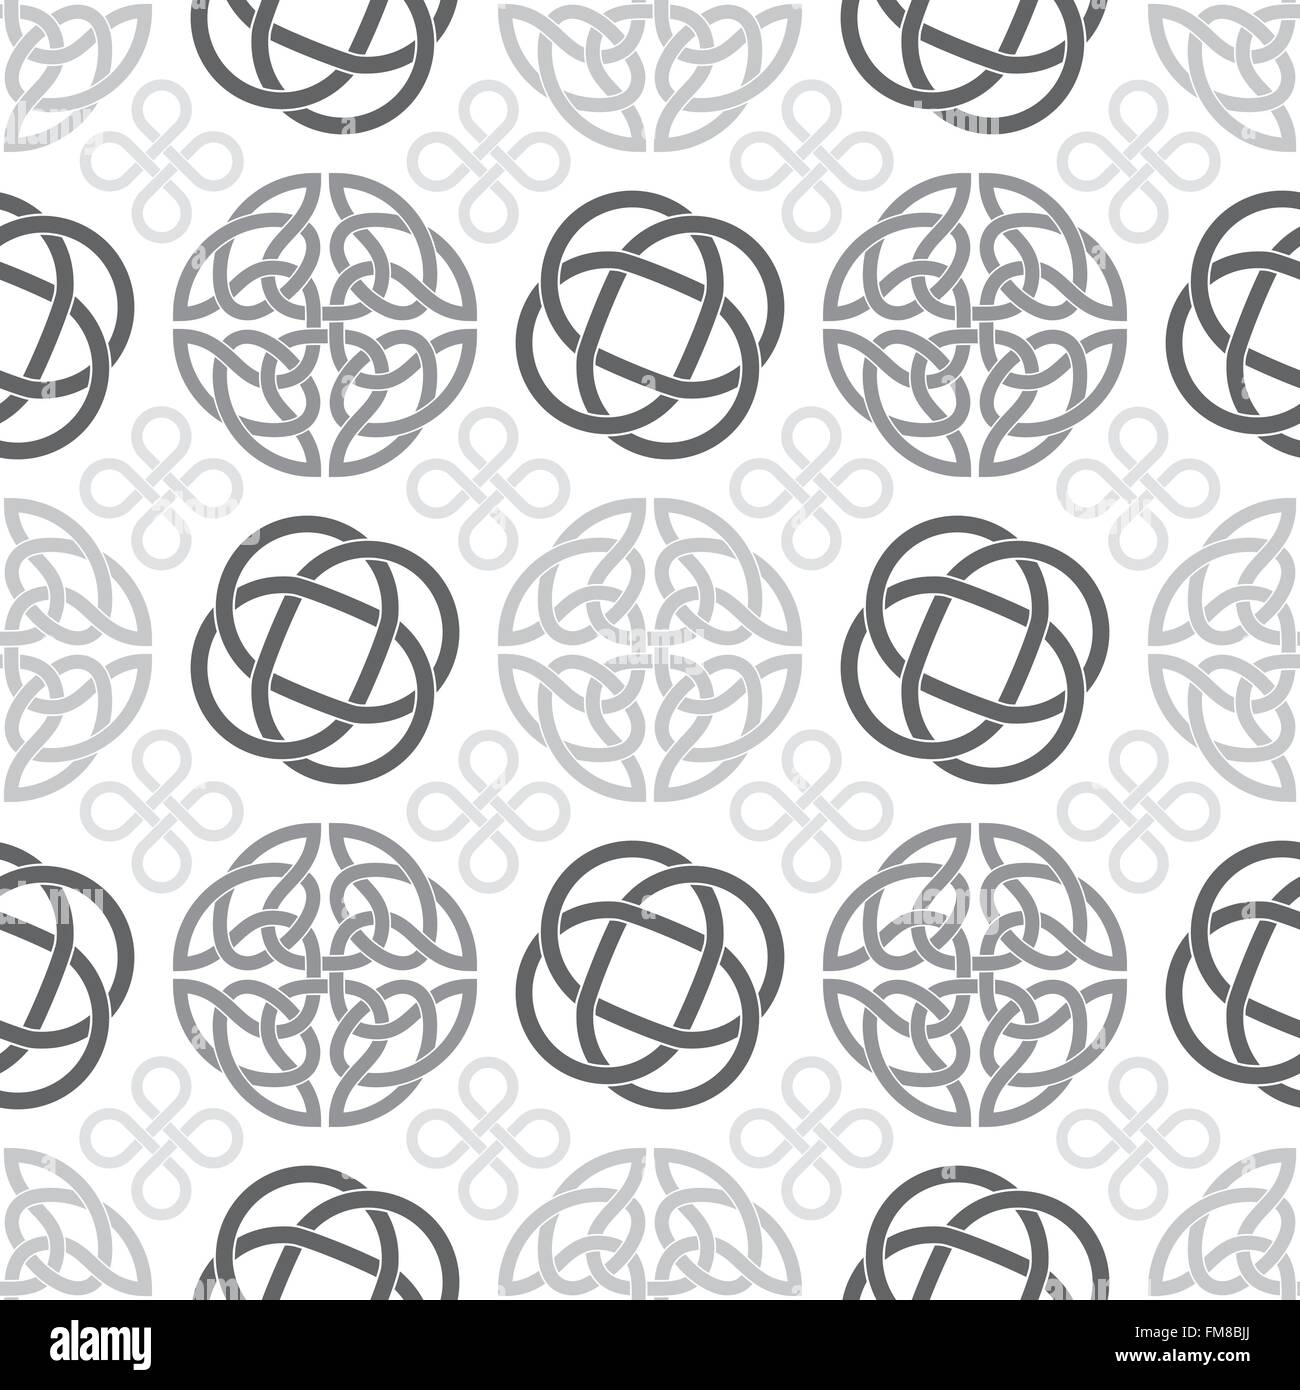 Seamless Pattern With Celtic Knot Symbols Stock Vector Art